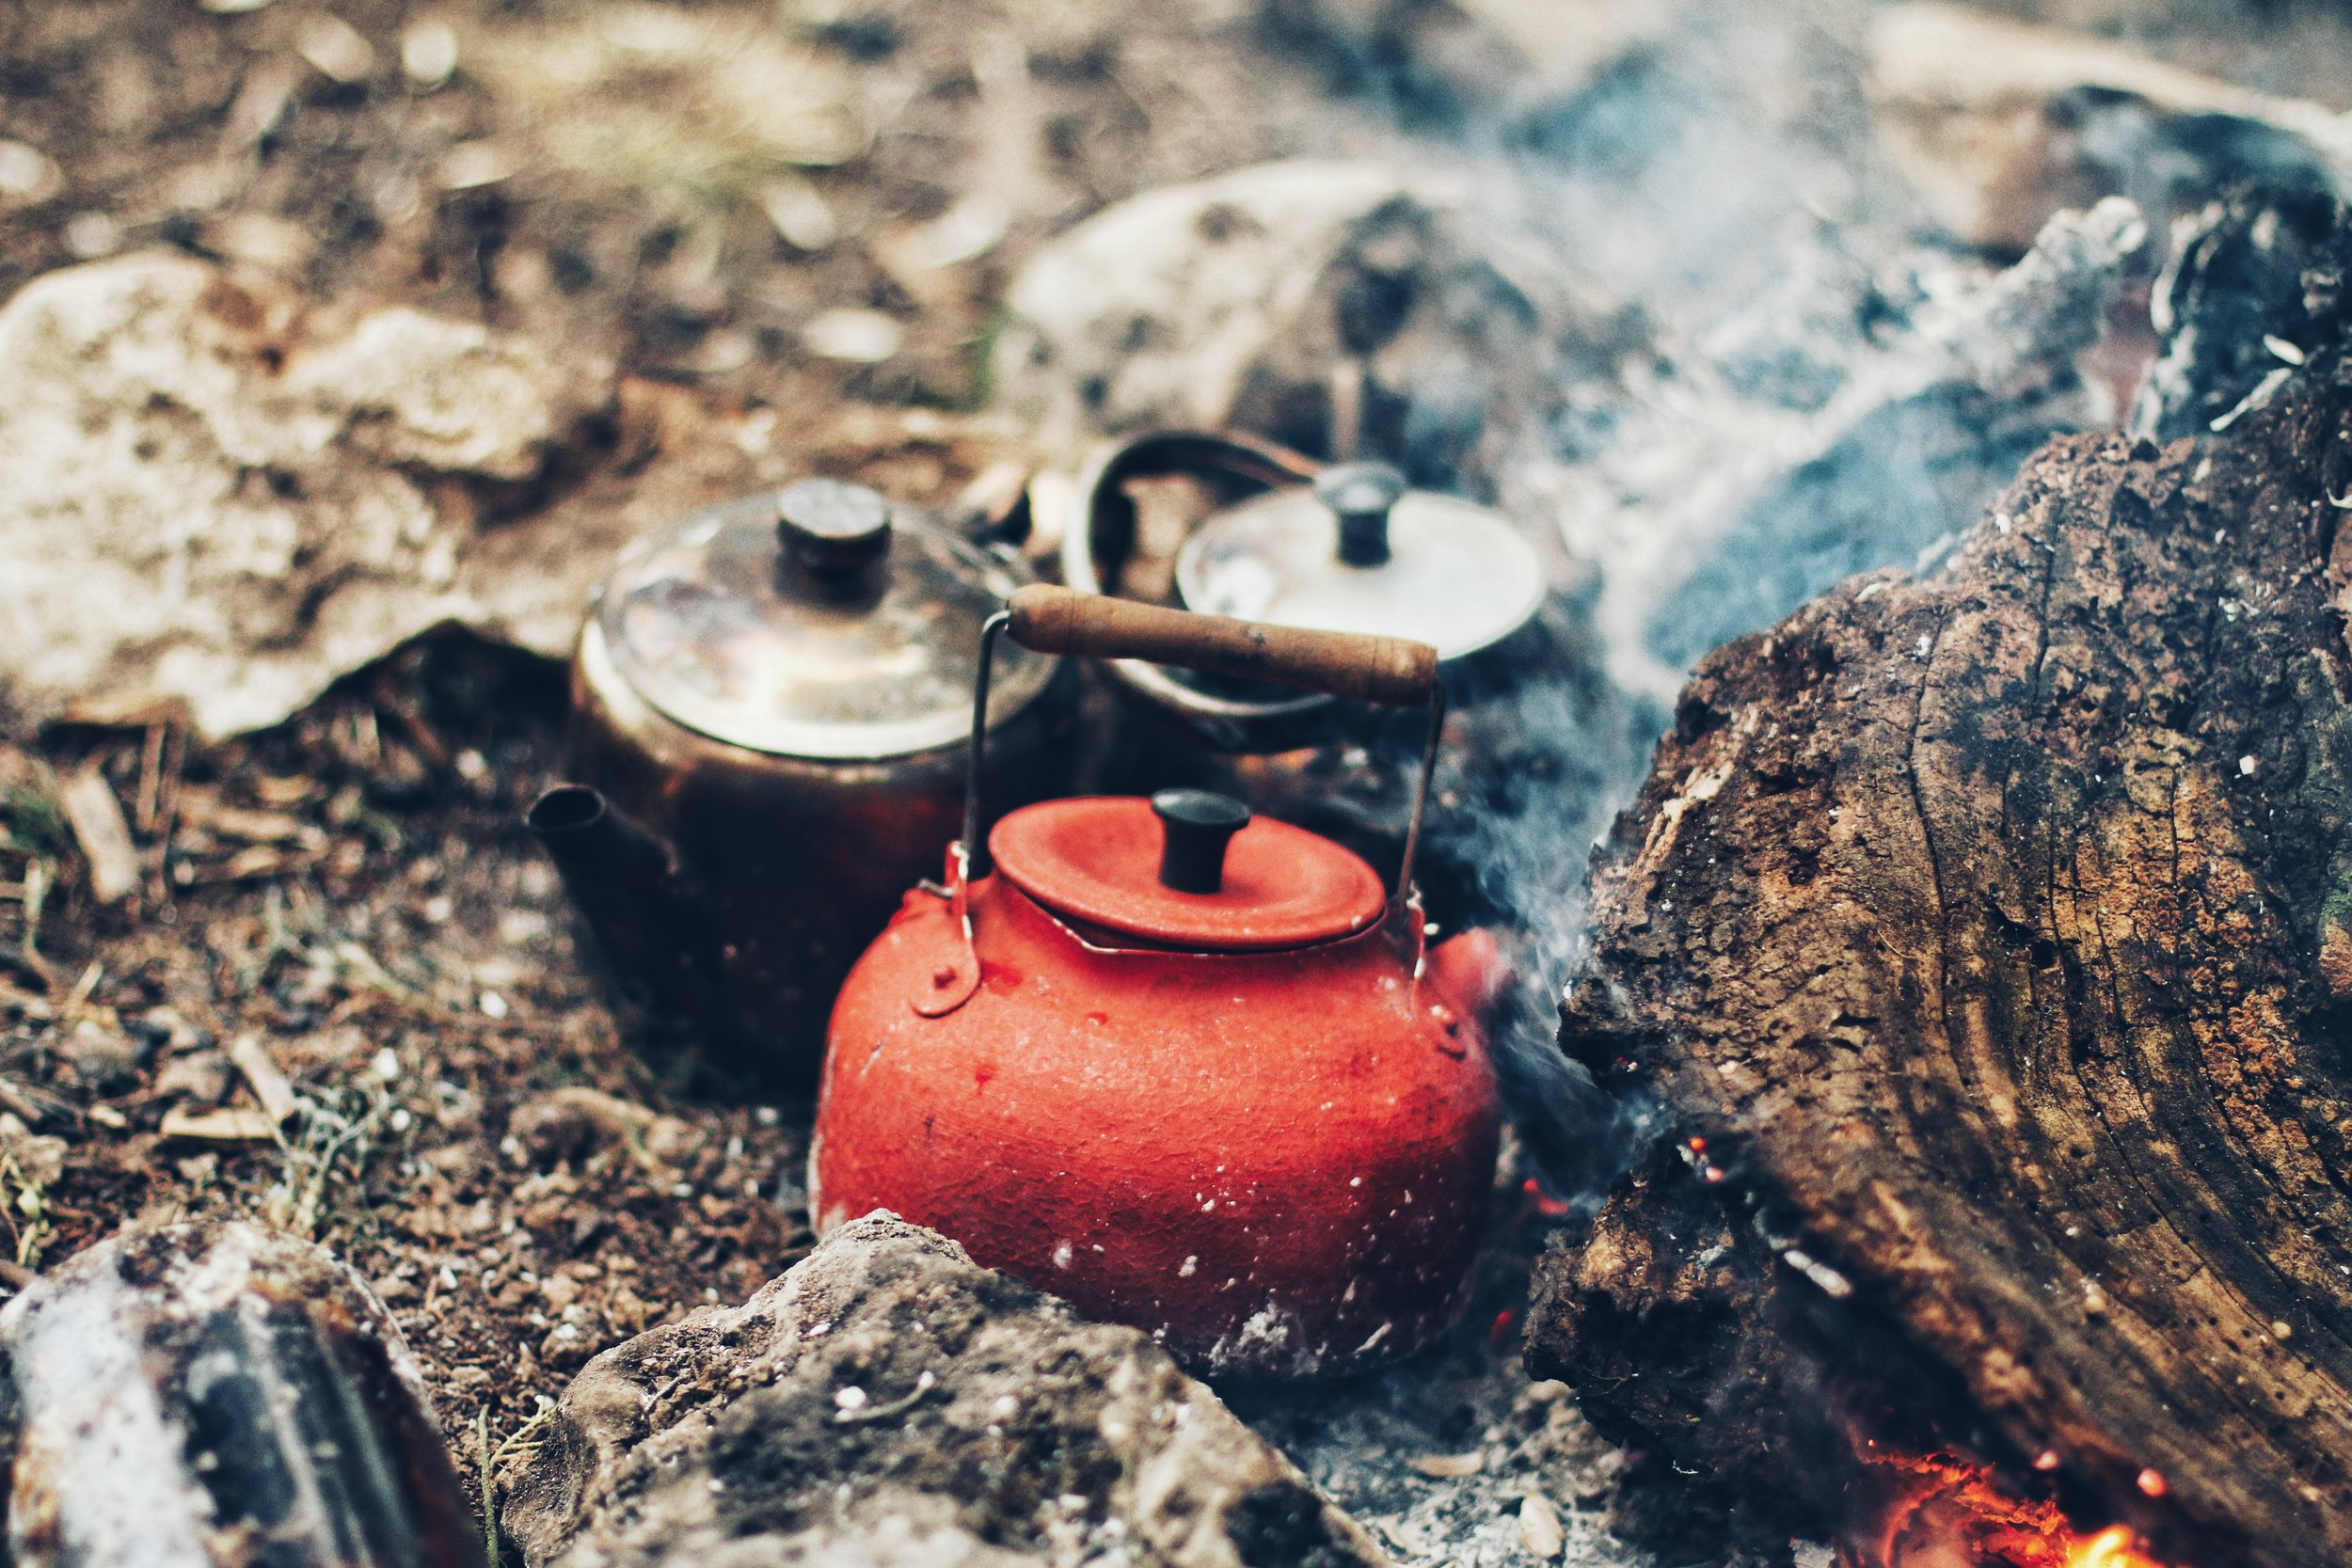 Cookware, dishes and utensils - Learn more about